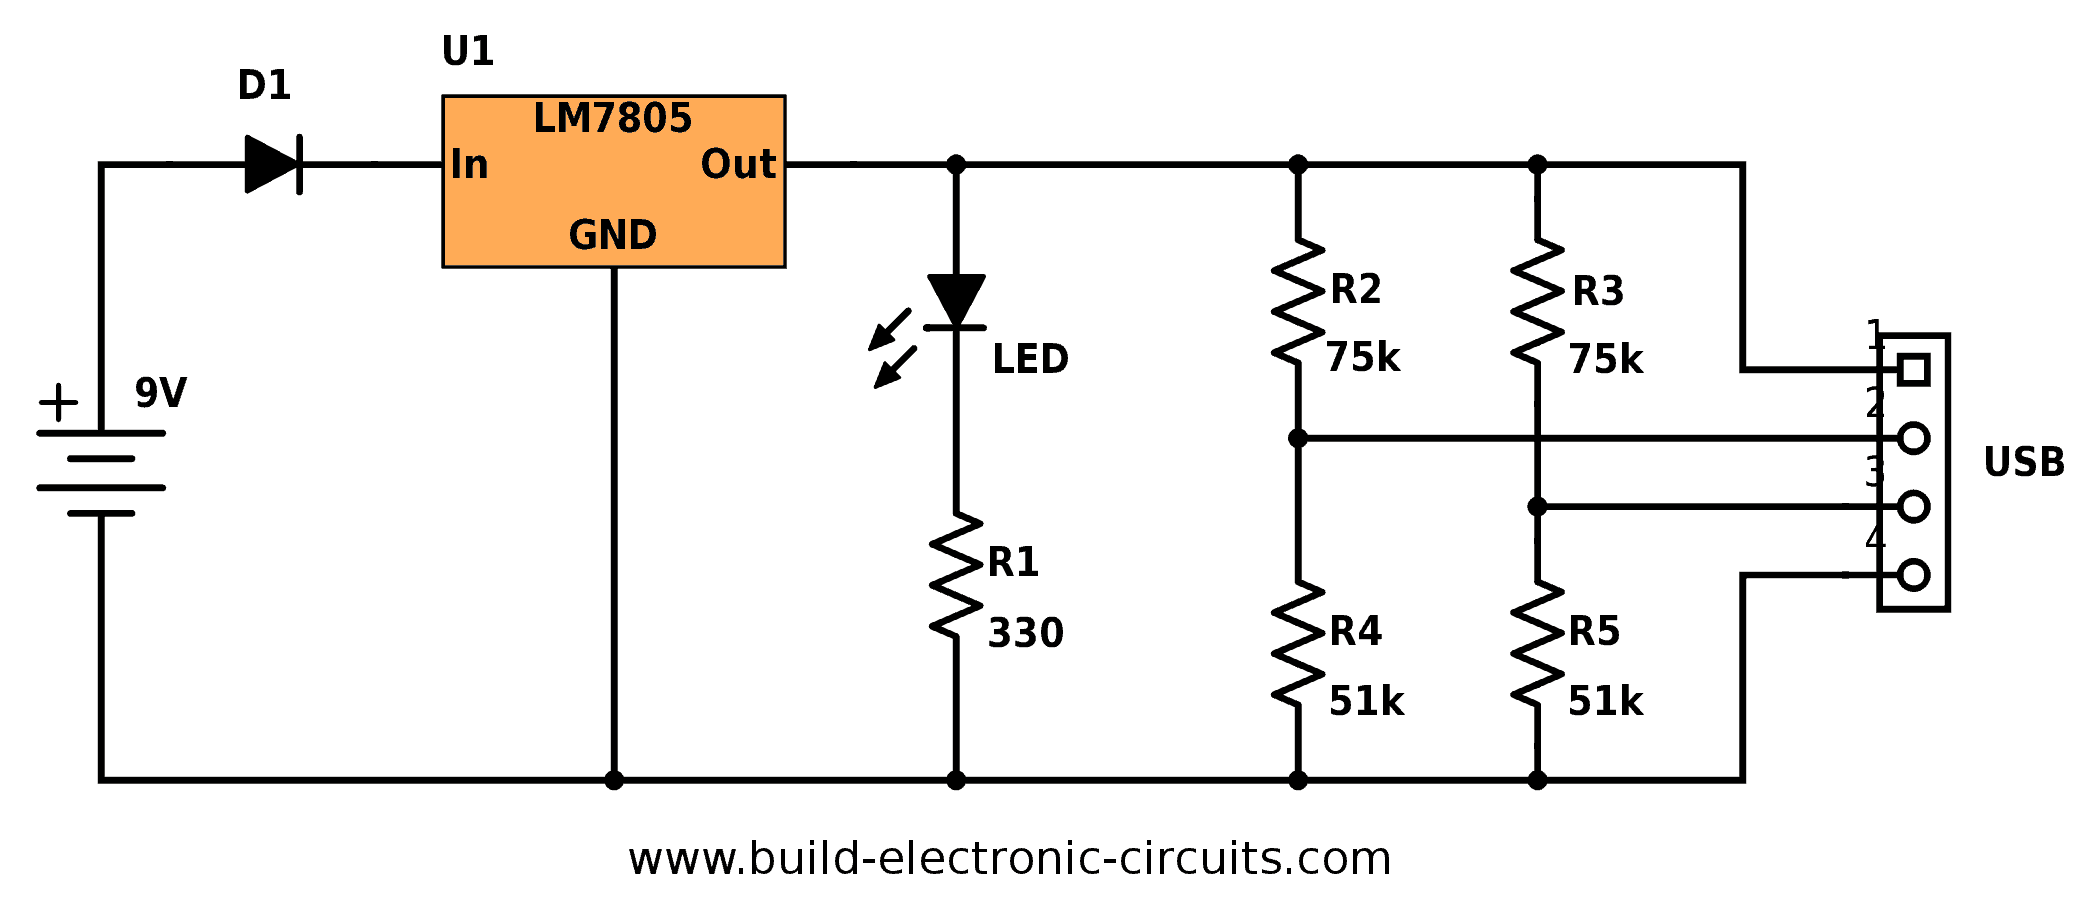 Usb Circuit Diagram - Circuit Diagram Symbols •